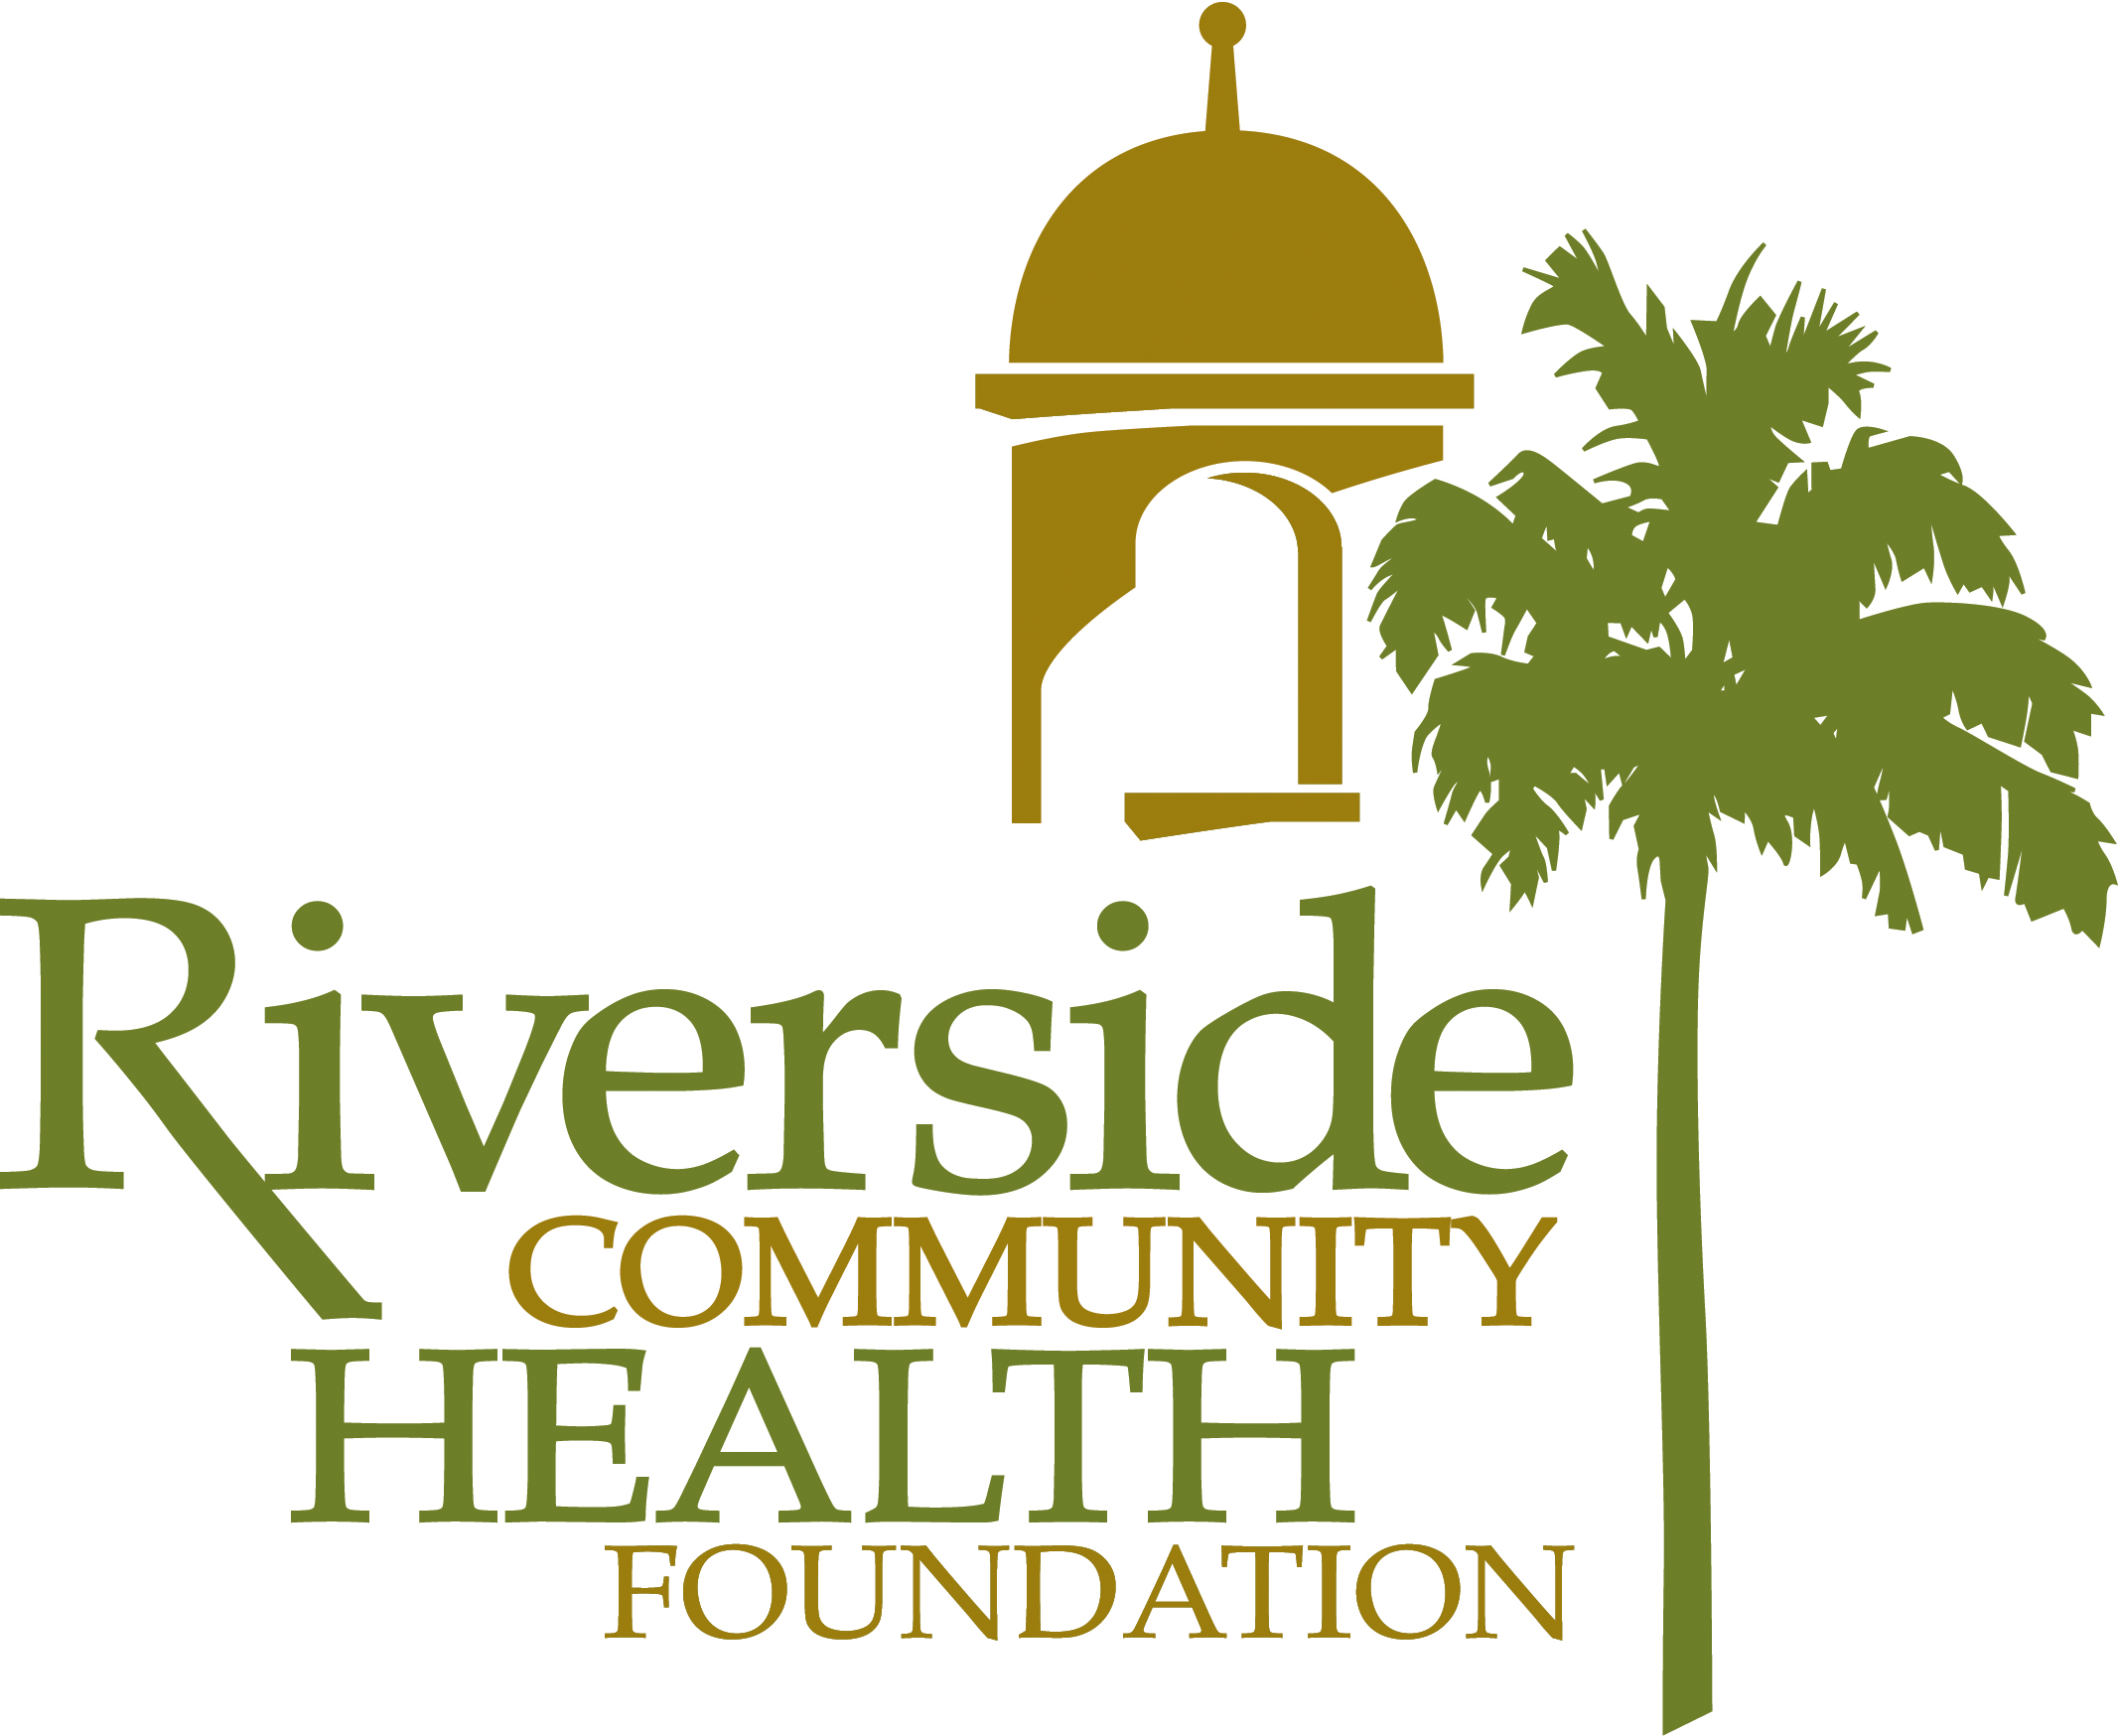 Riverside Community Health Foundation